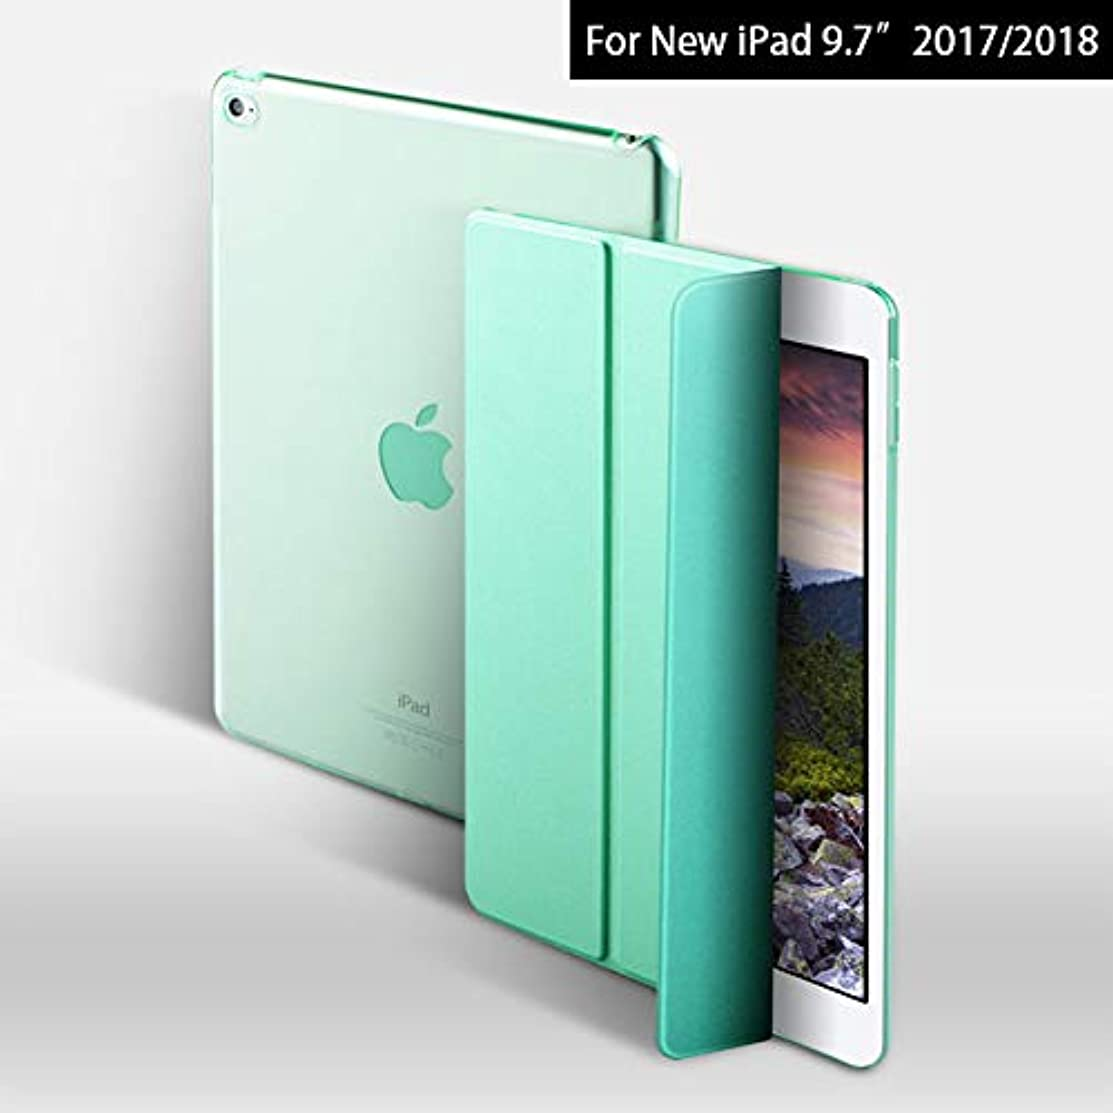 Case Cover for New iPad 9.7 inch 2017, SZEGYCHX YiPPee Color PU Smart Cover Case Magnet Wake Up Sleep For New iPad 2017 model A1822 A1823 (Mint Green)